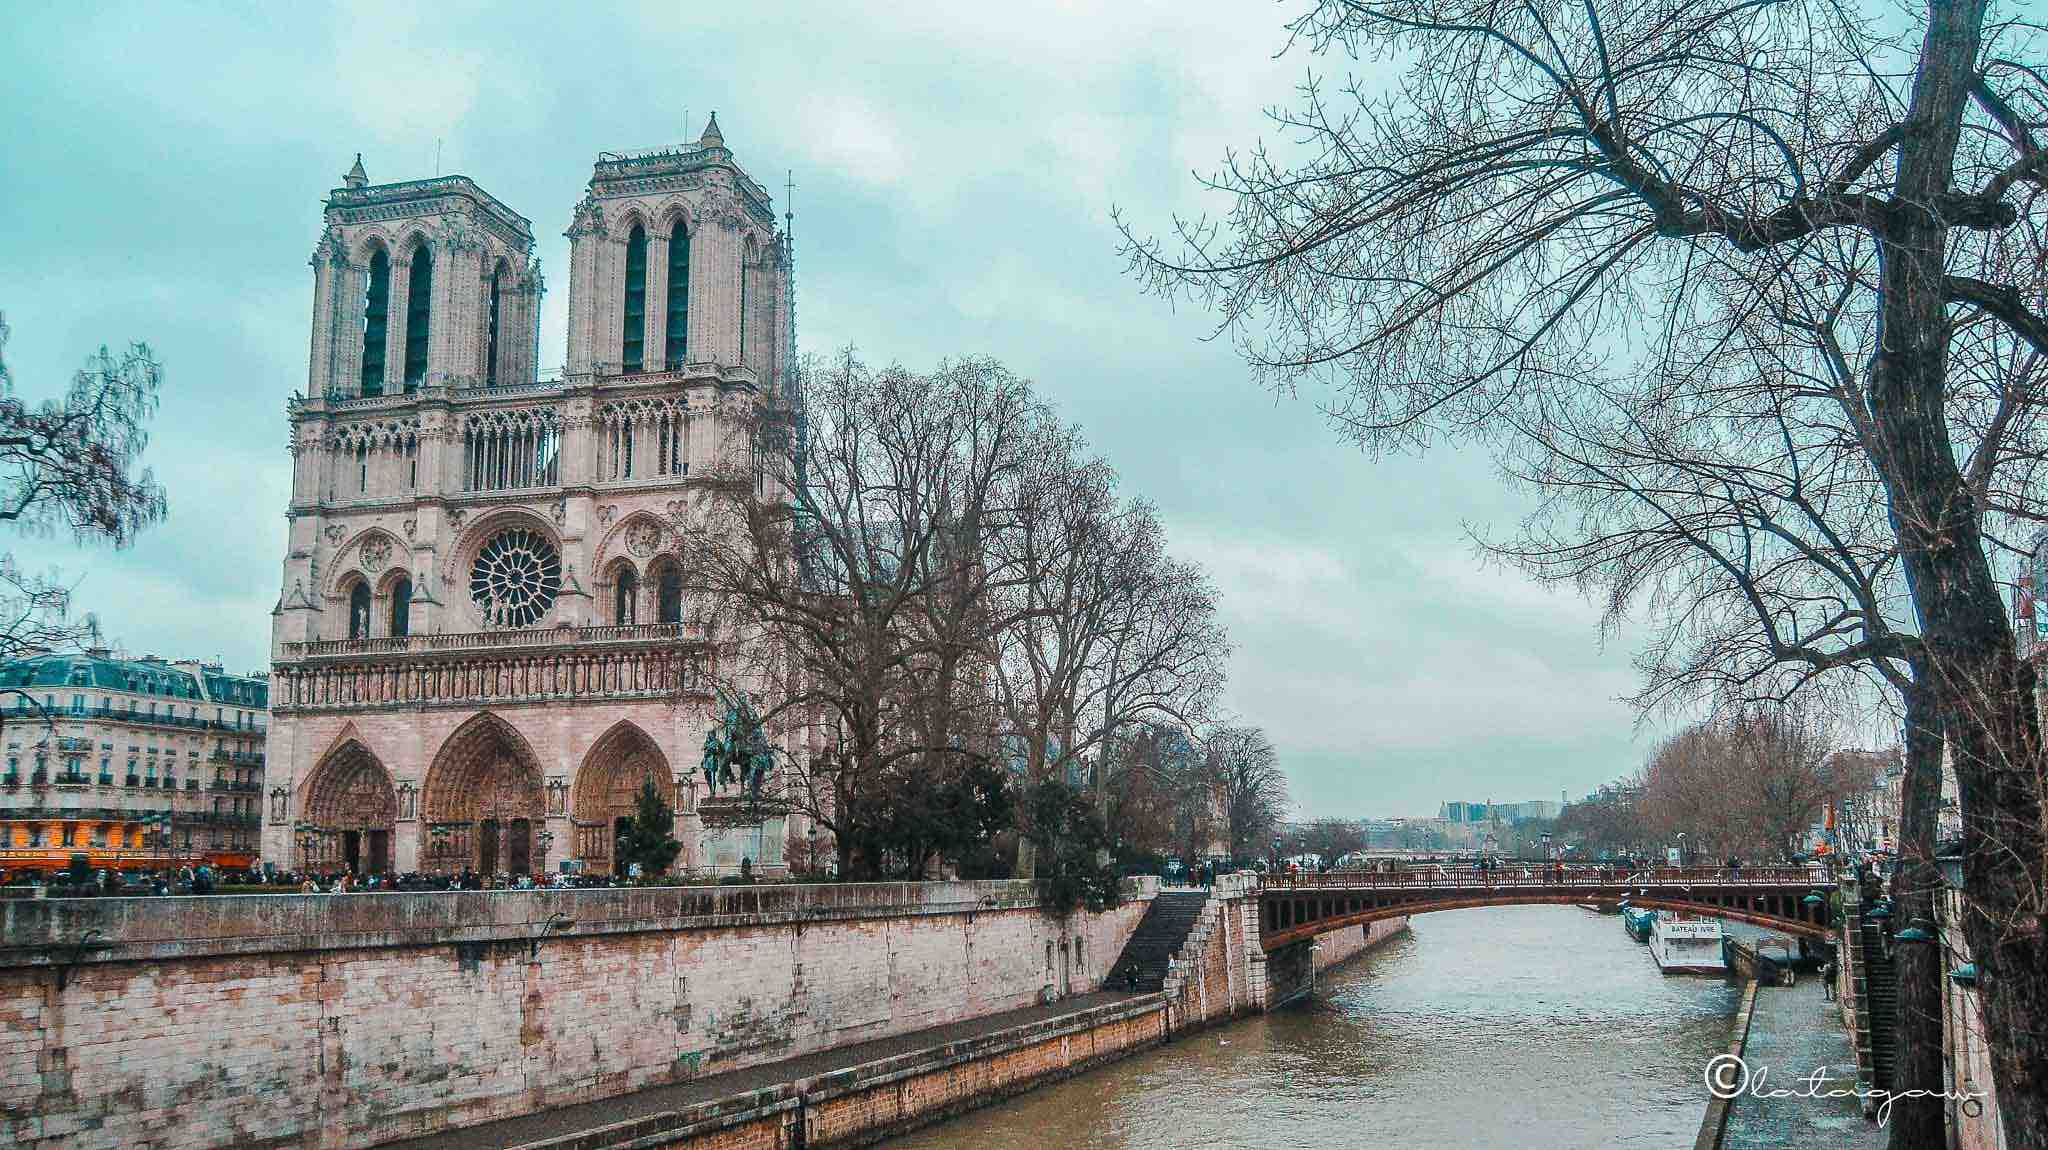 notre dame cathedral and seine river in paris france